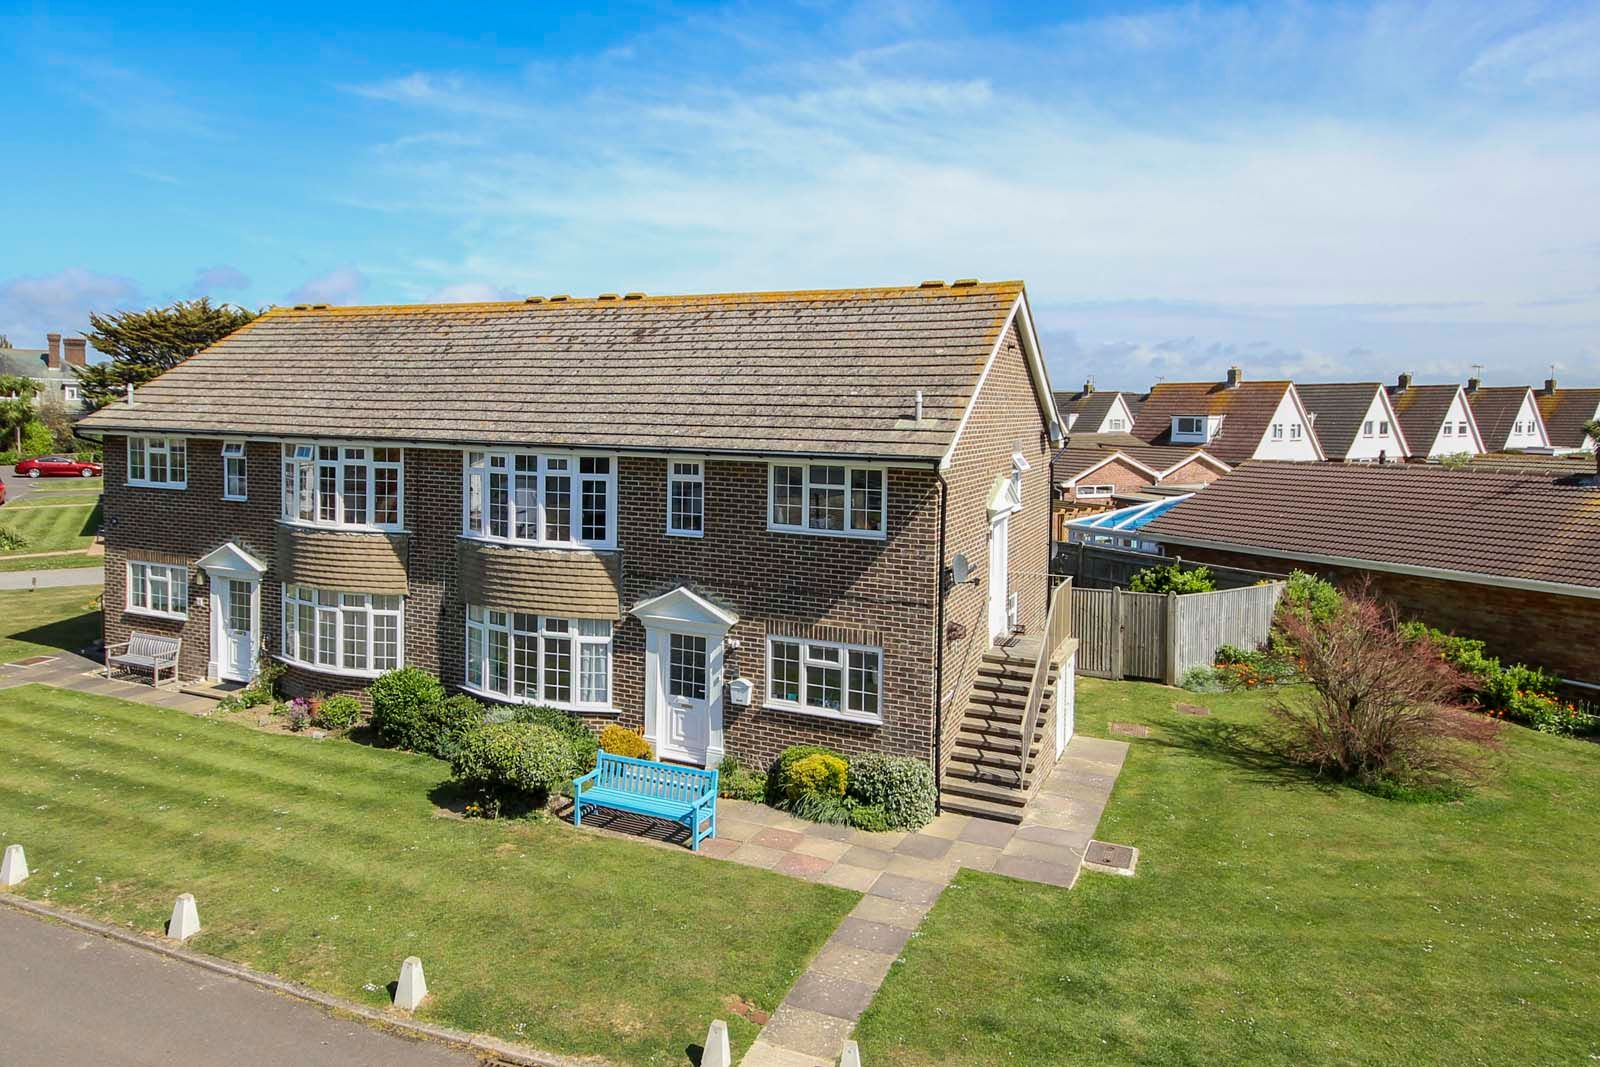 2 bed  for sale in Ferring Marine 1